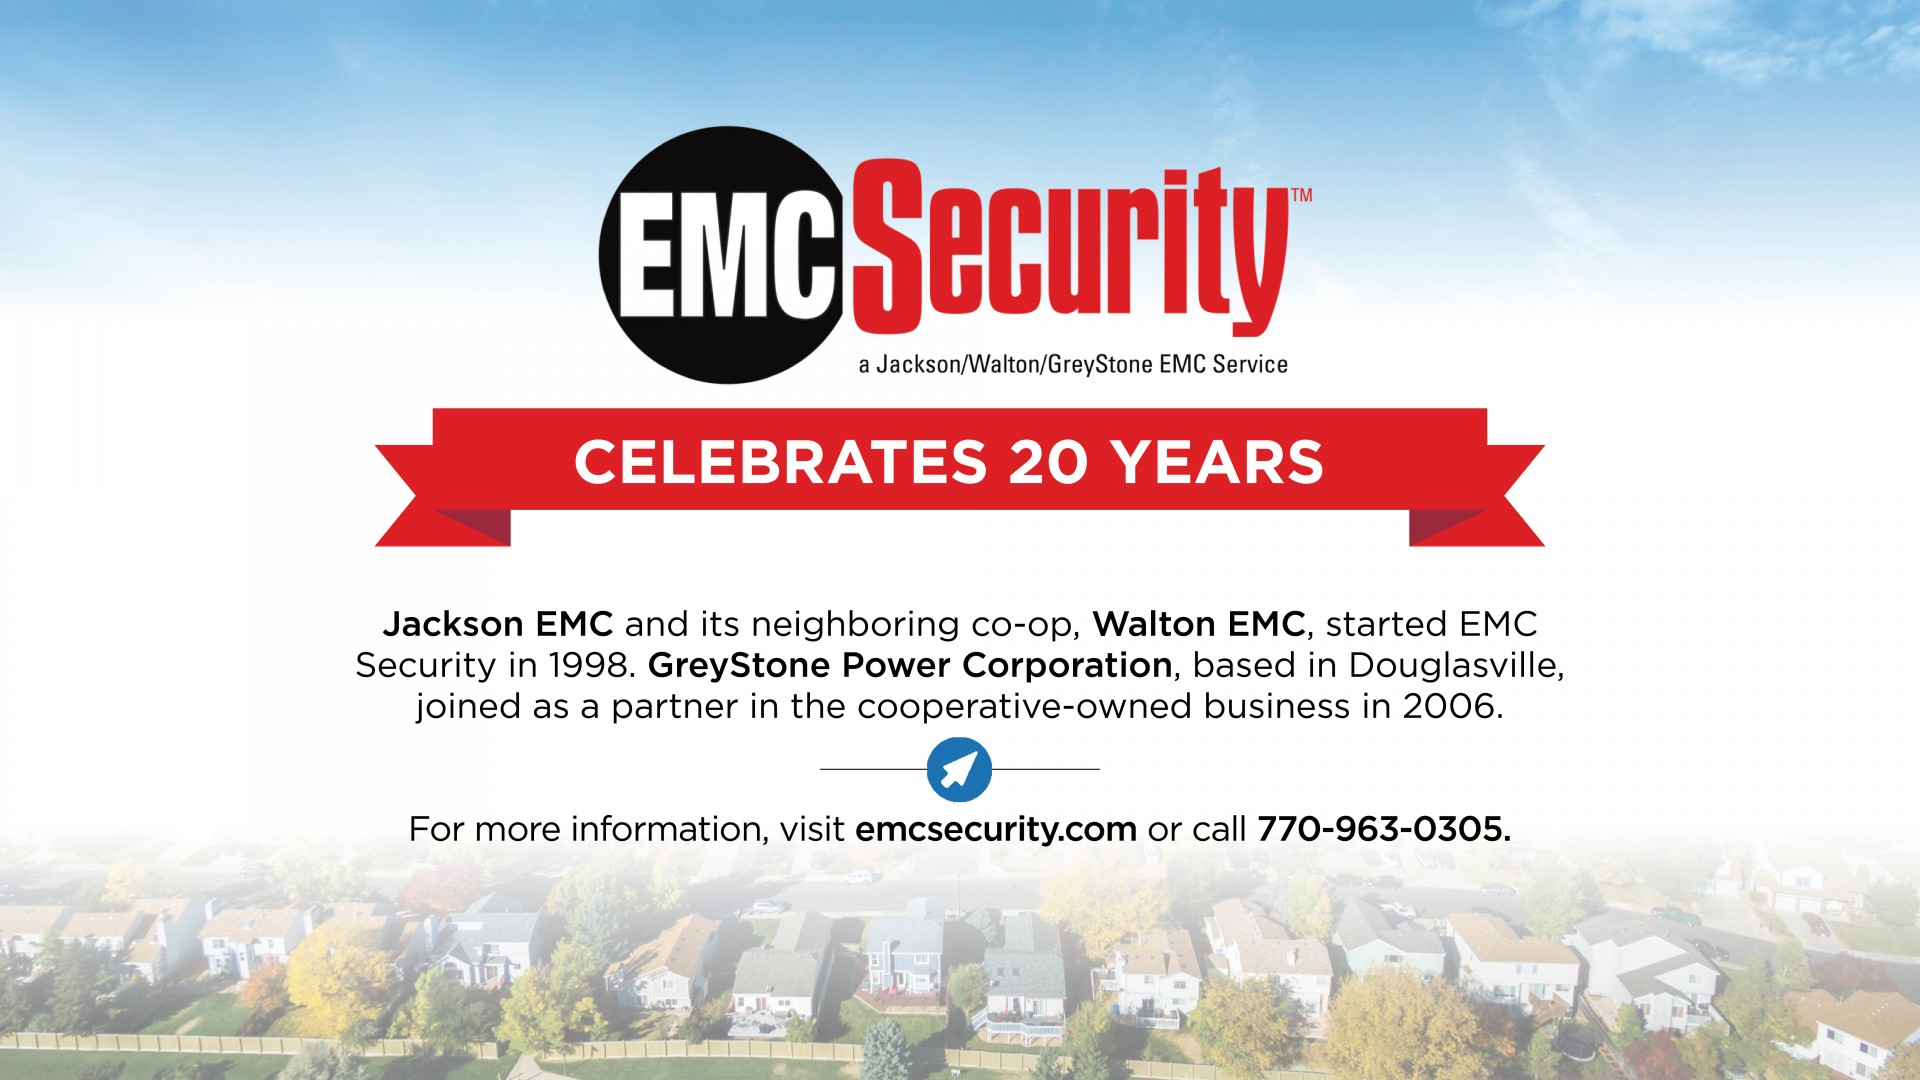 JEMCO-EMC Security